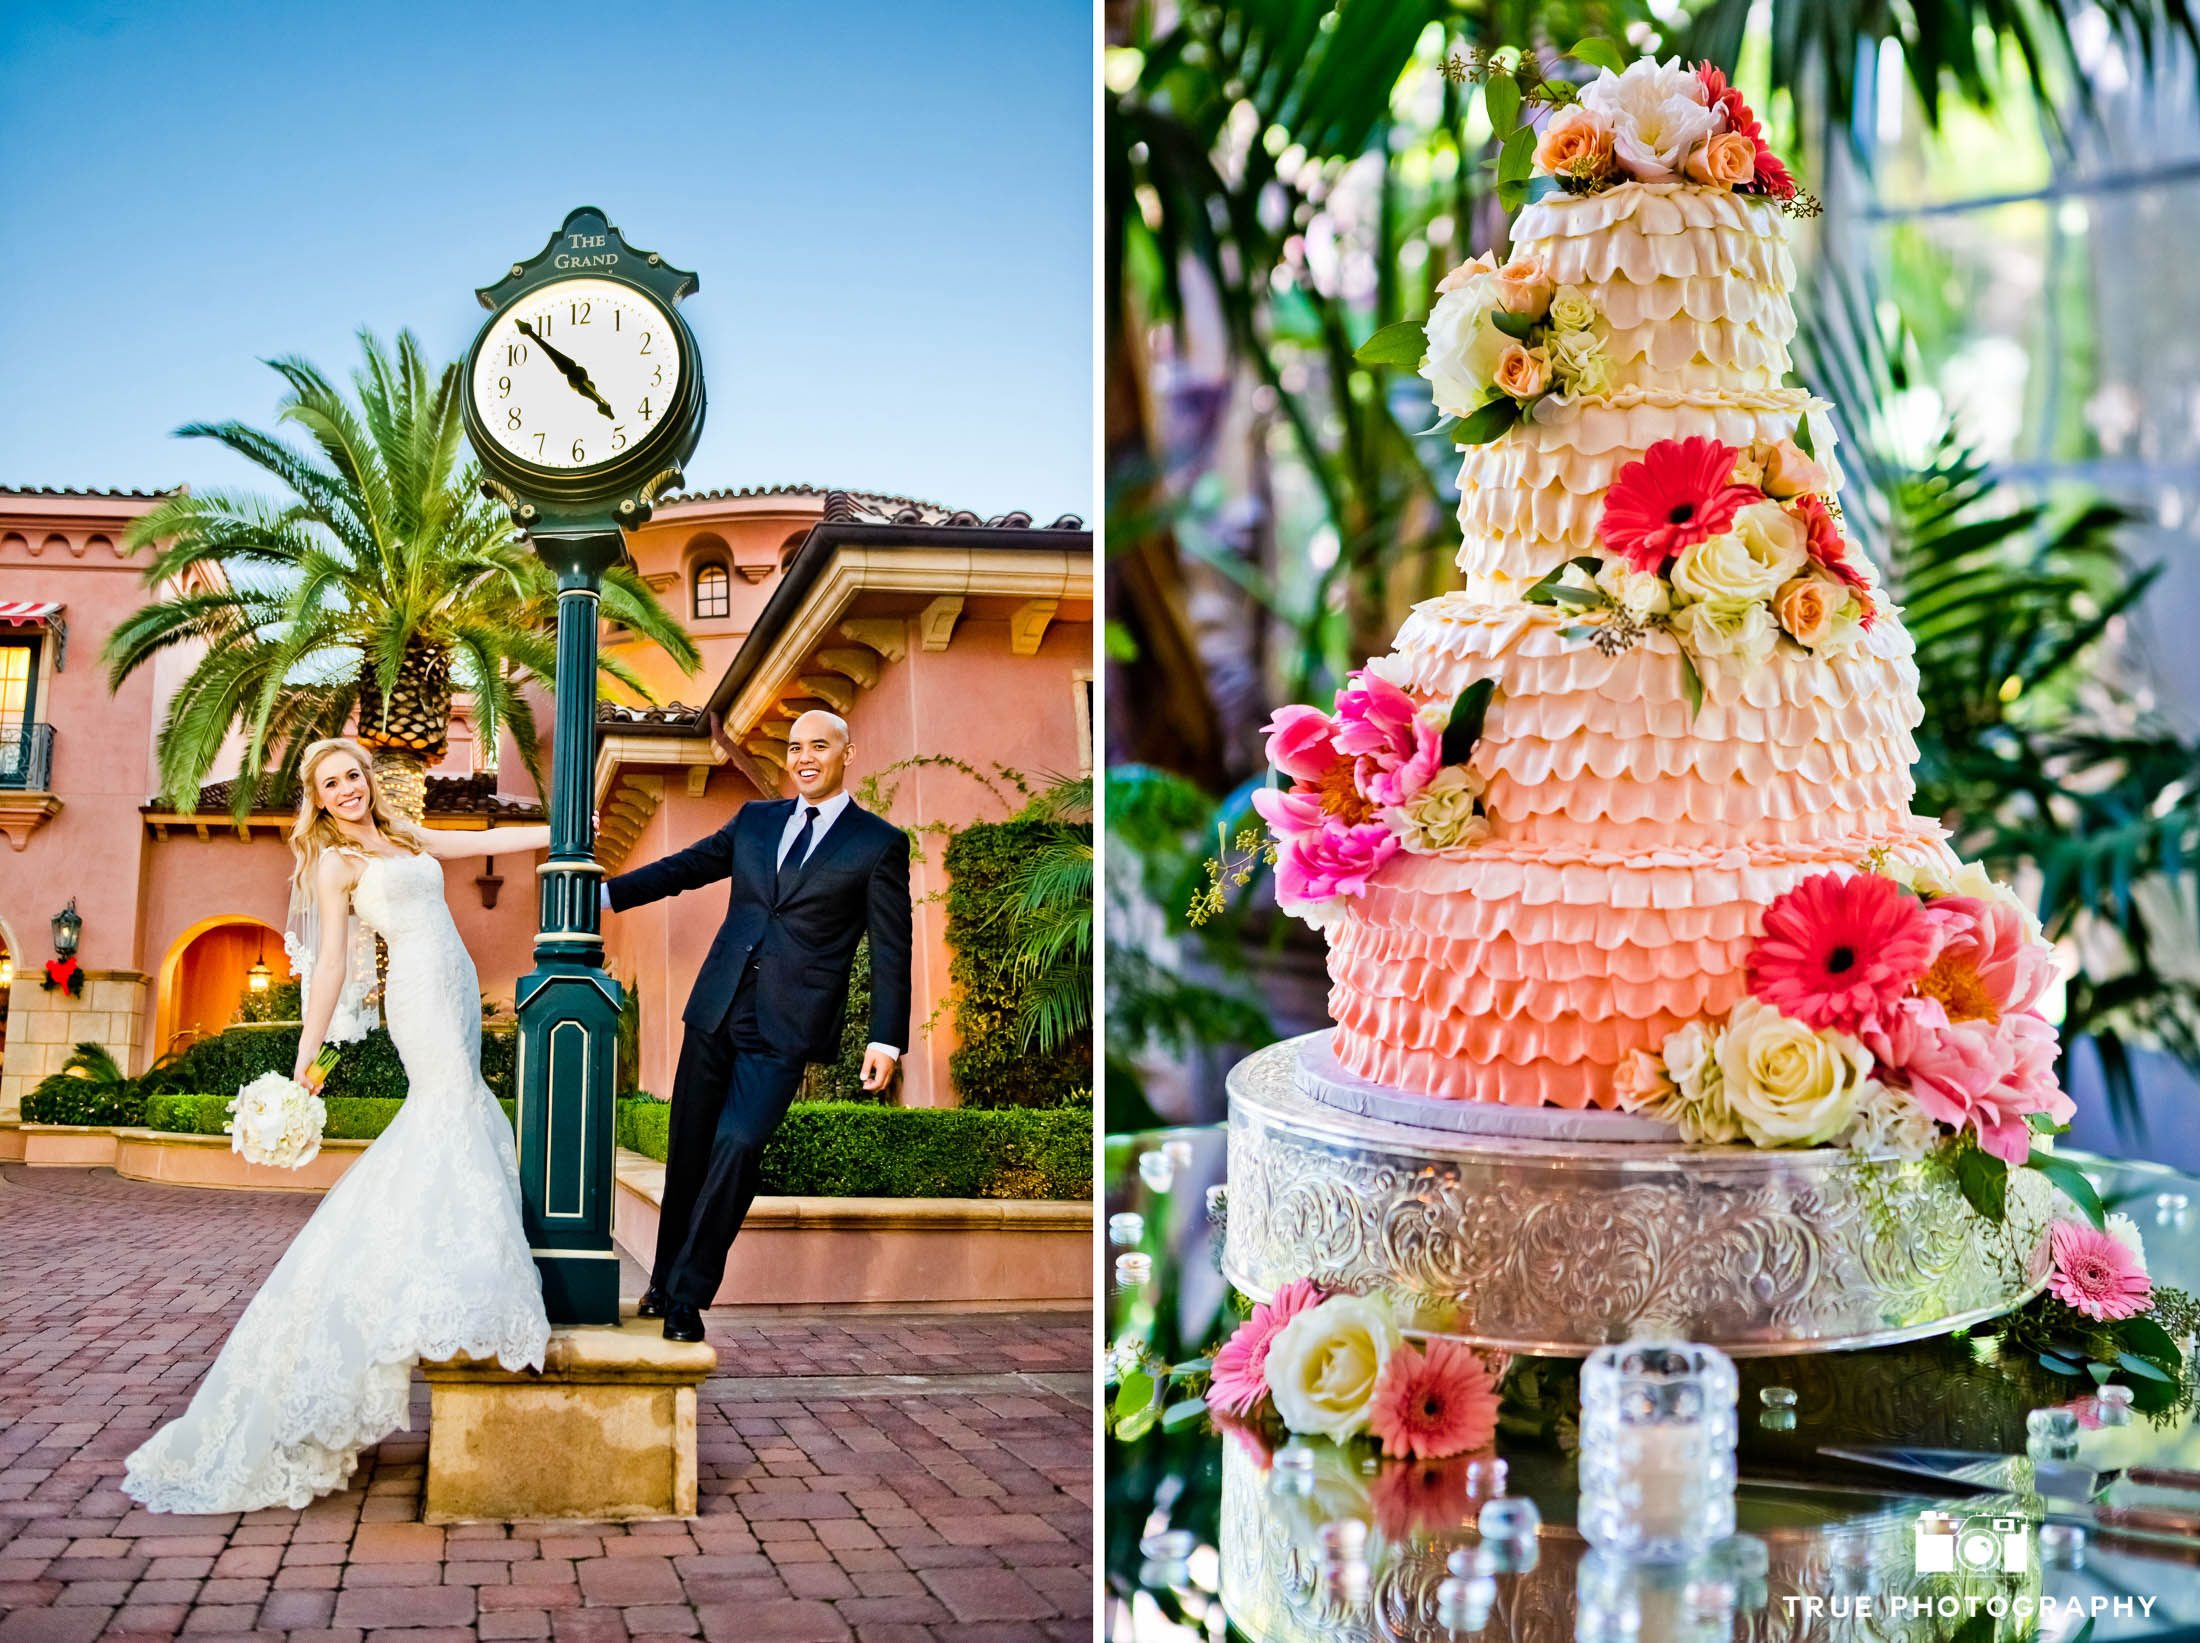 Fun and tropical wedding couple and cake